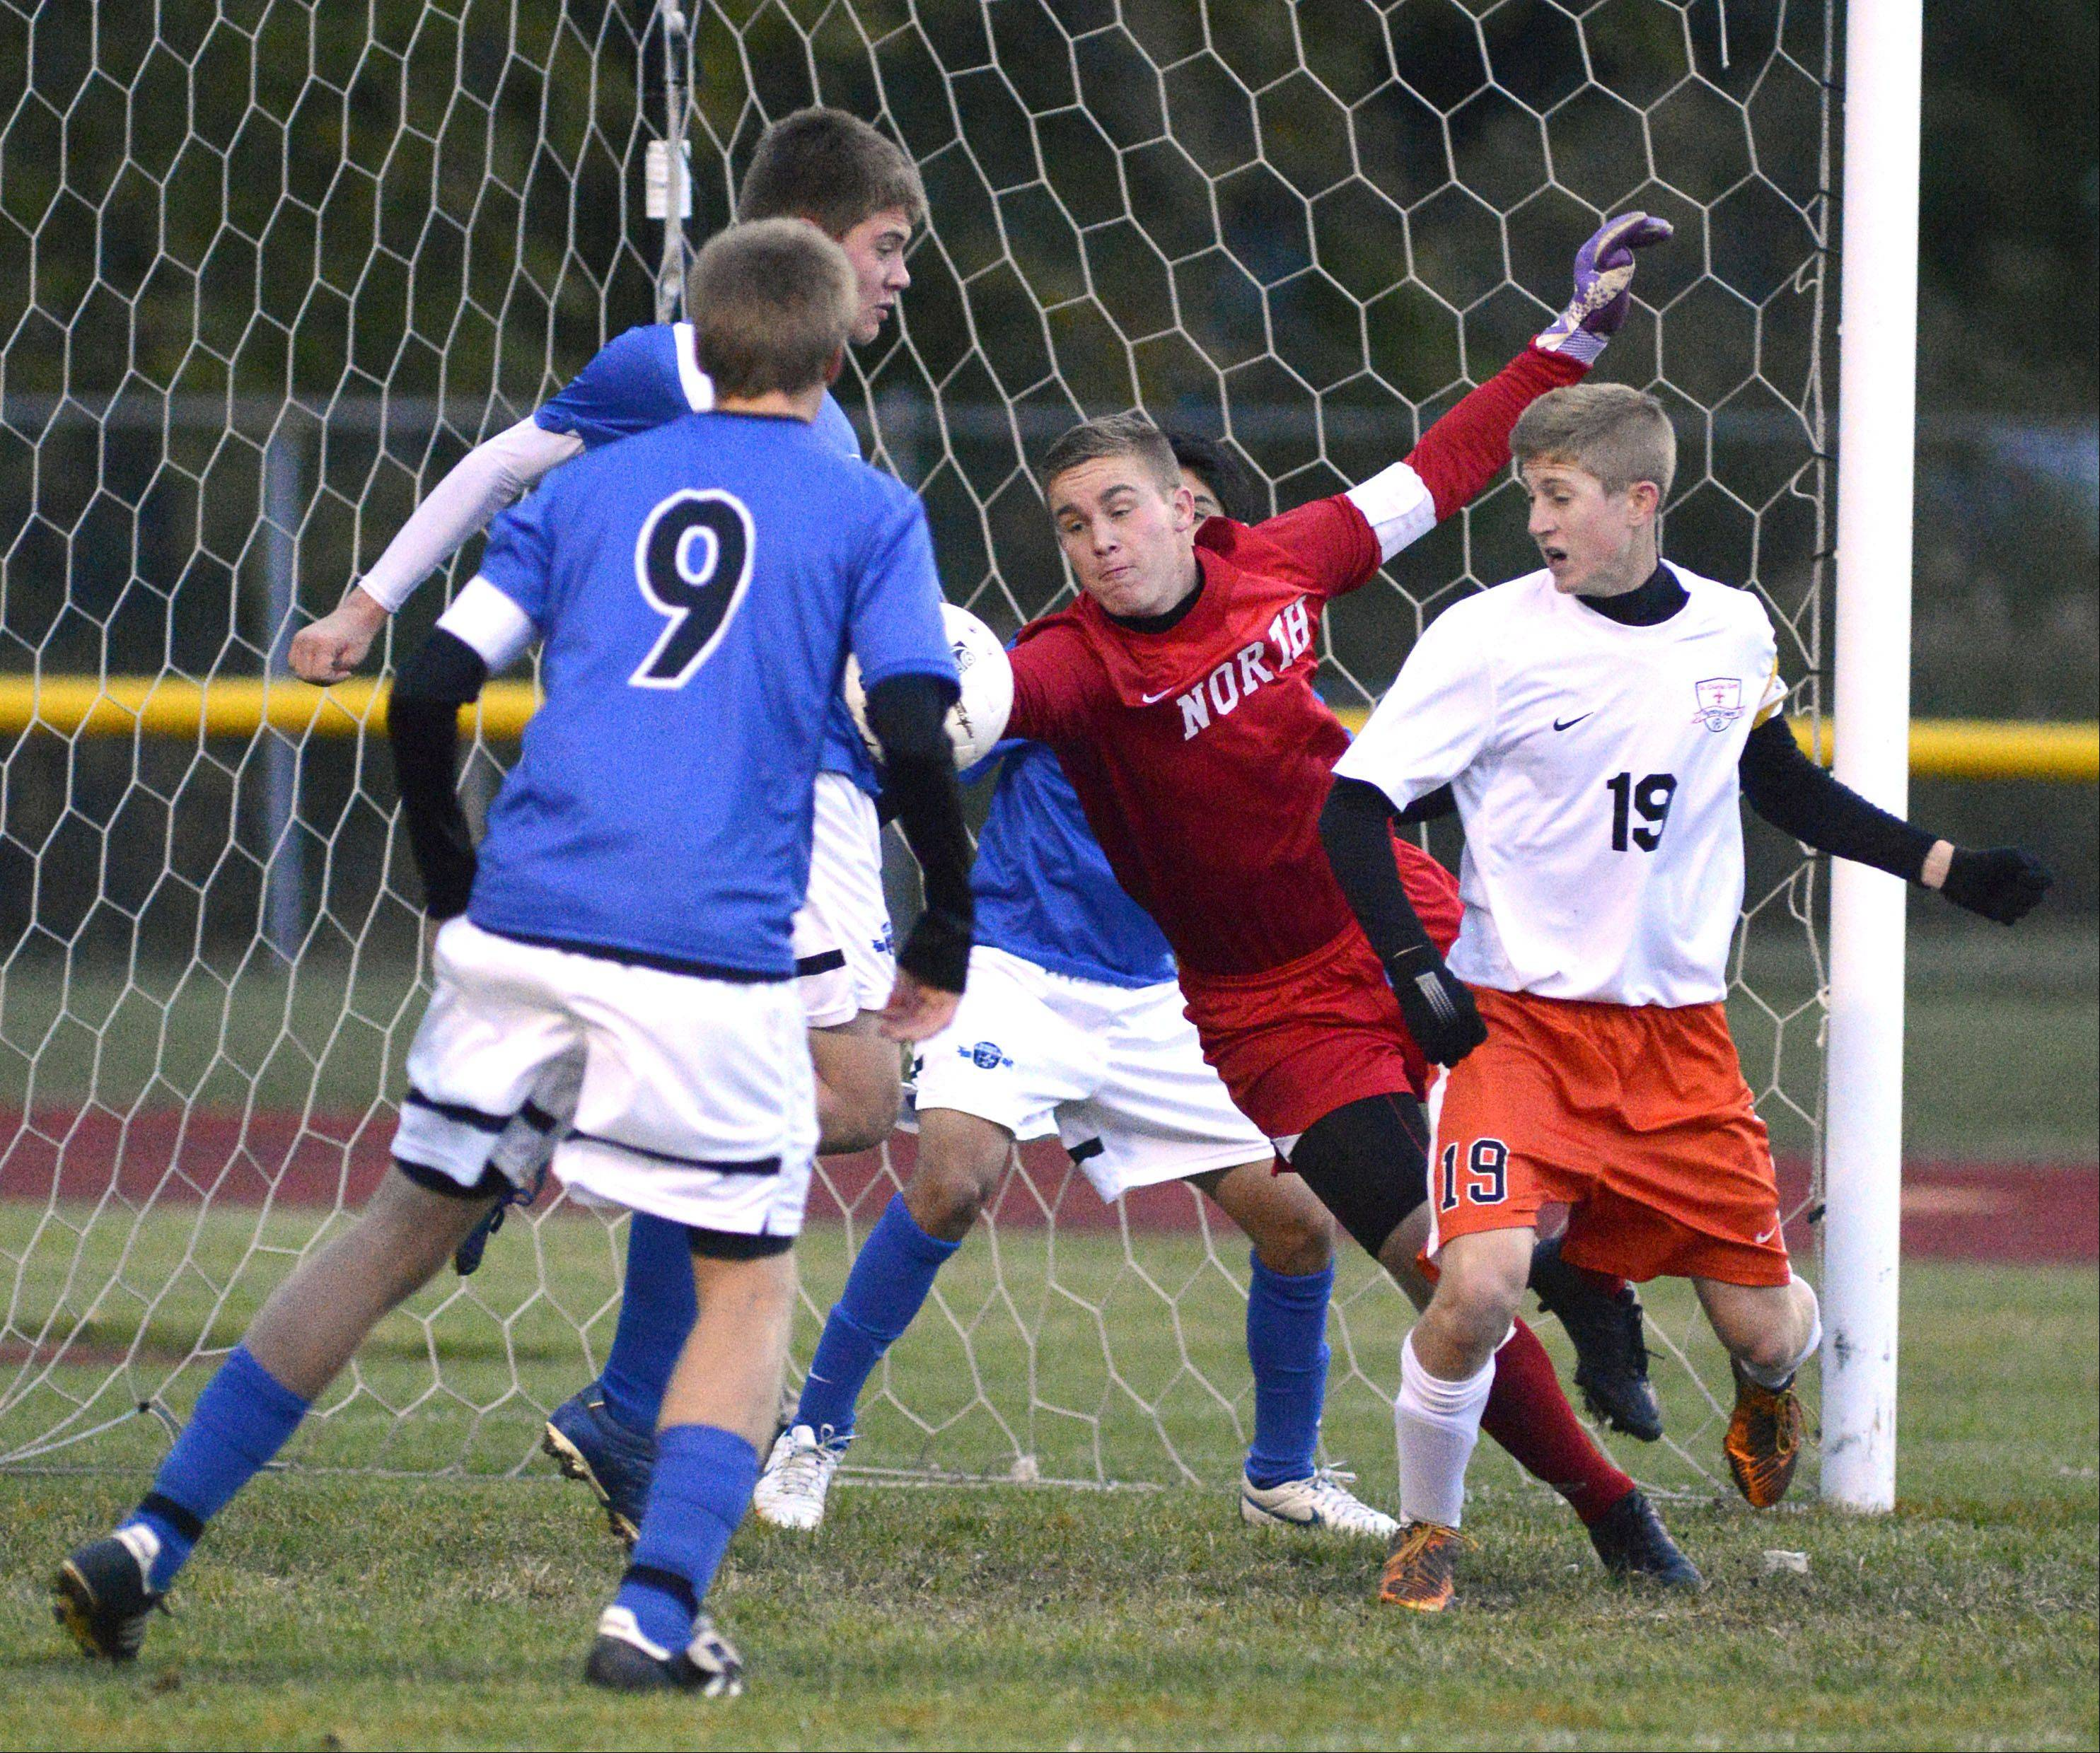 St. Charles North goalie Billy Larsen leaps to keep the ball out of the net with St. Charles East's Andrew Shone on right in the second half on Wednesday, October 23.